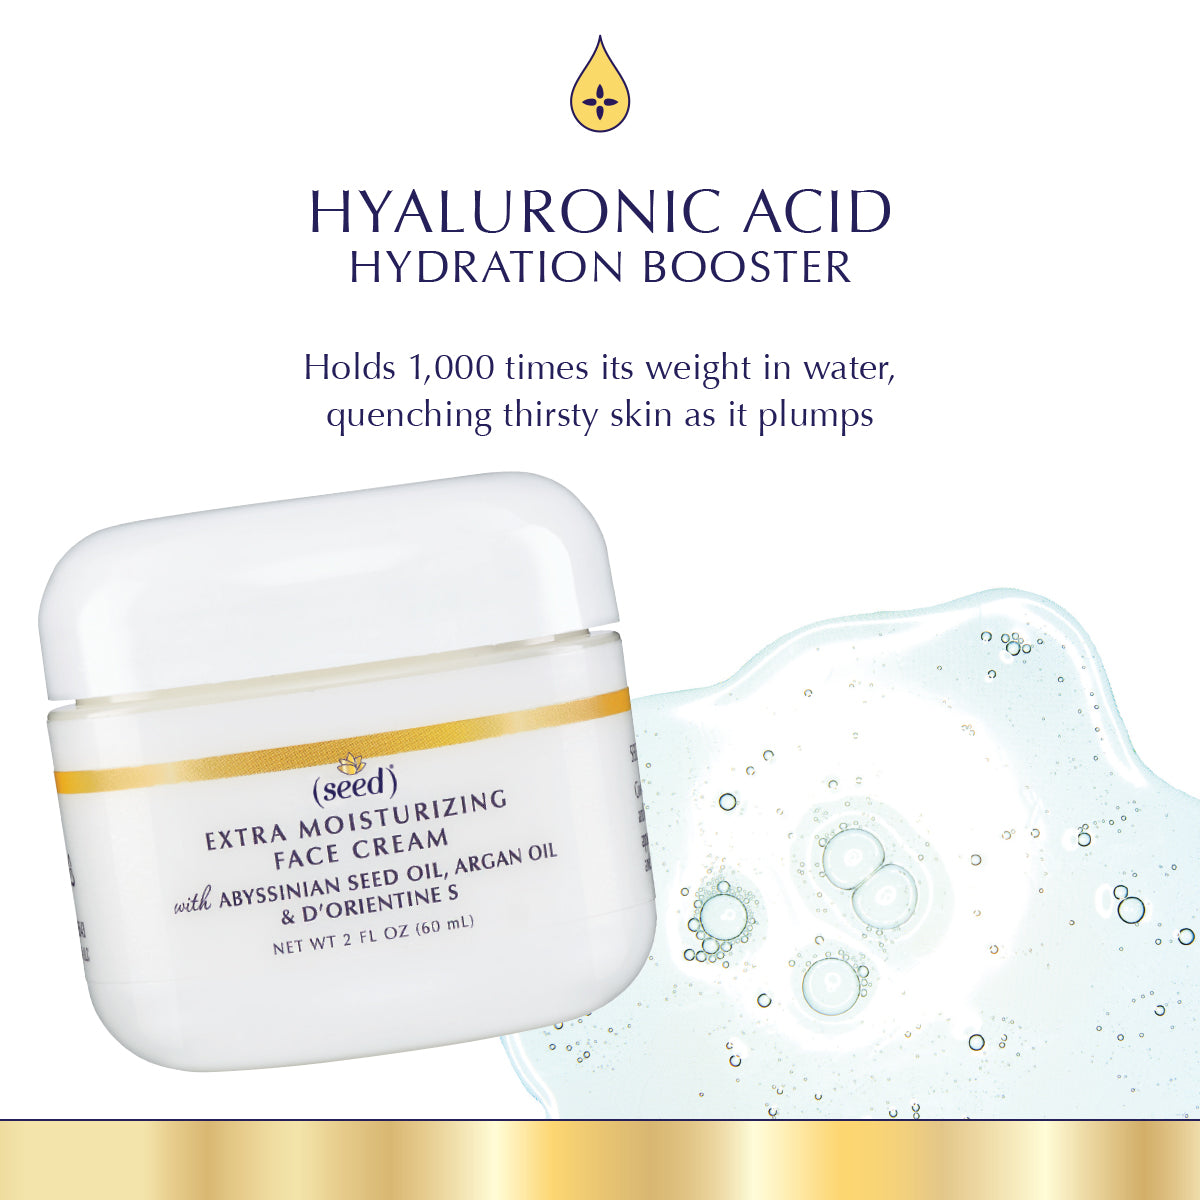 Seed Advanced Botanicals Extra Moisturizing Face Cream features Hyaluronic Acid